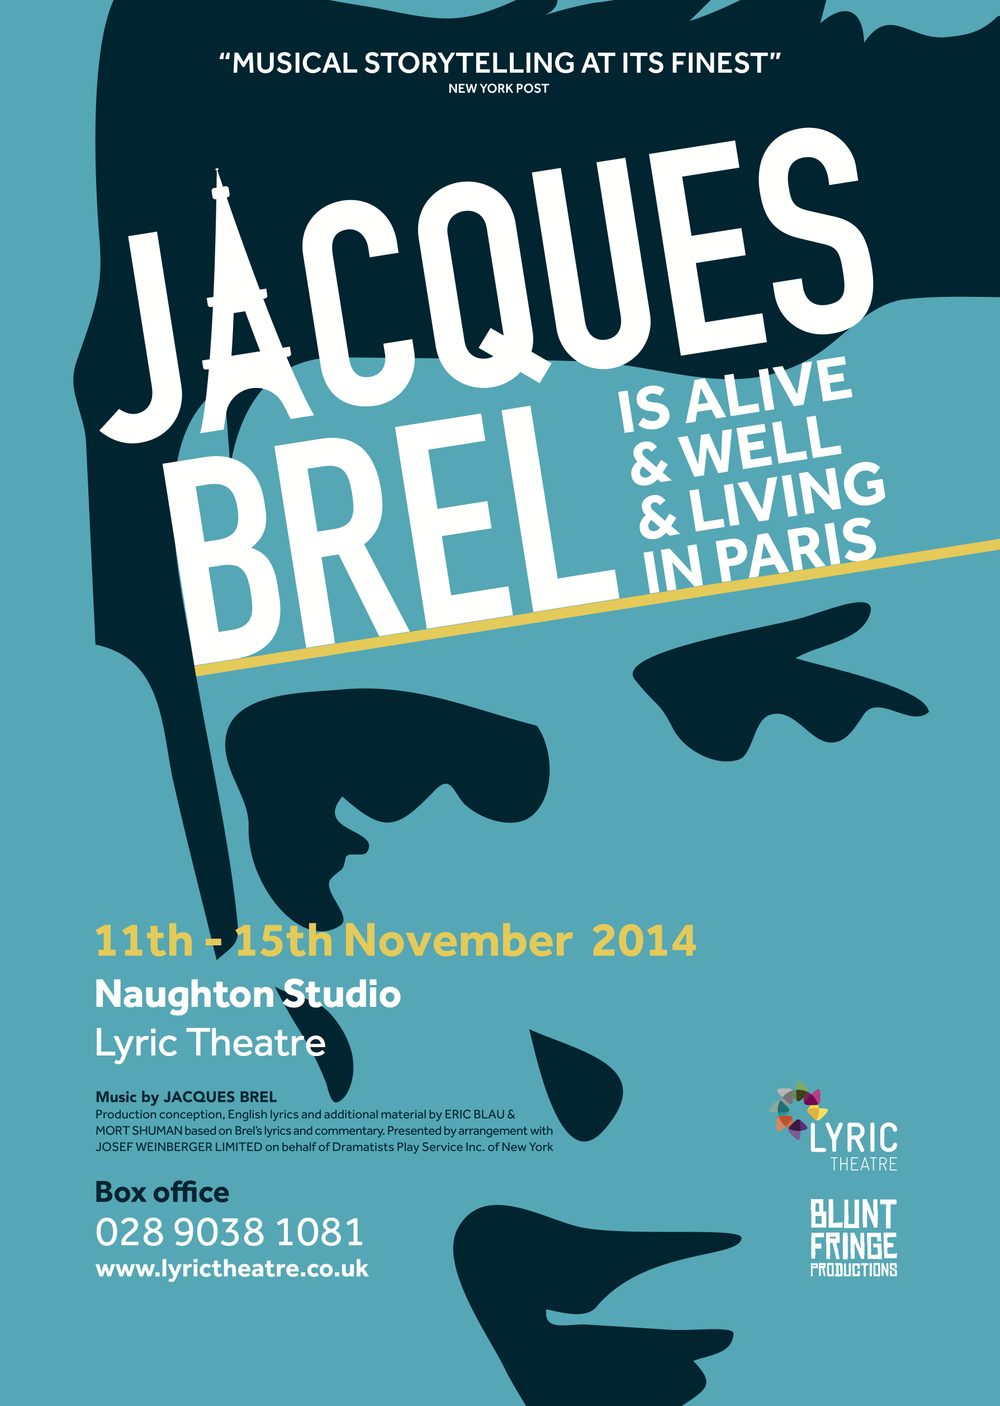 """Jacques Brel is Alive and Well and Living in Paris'"